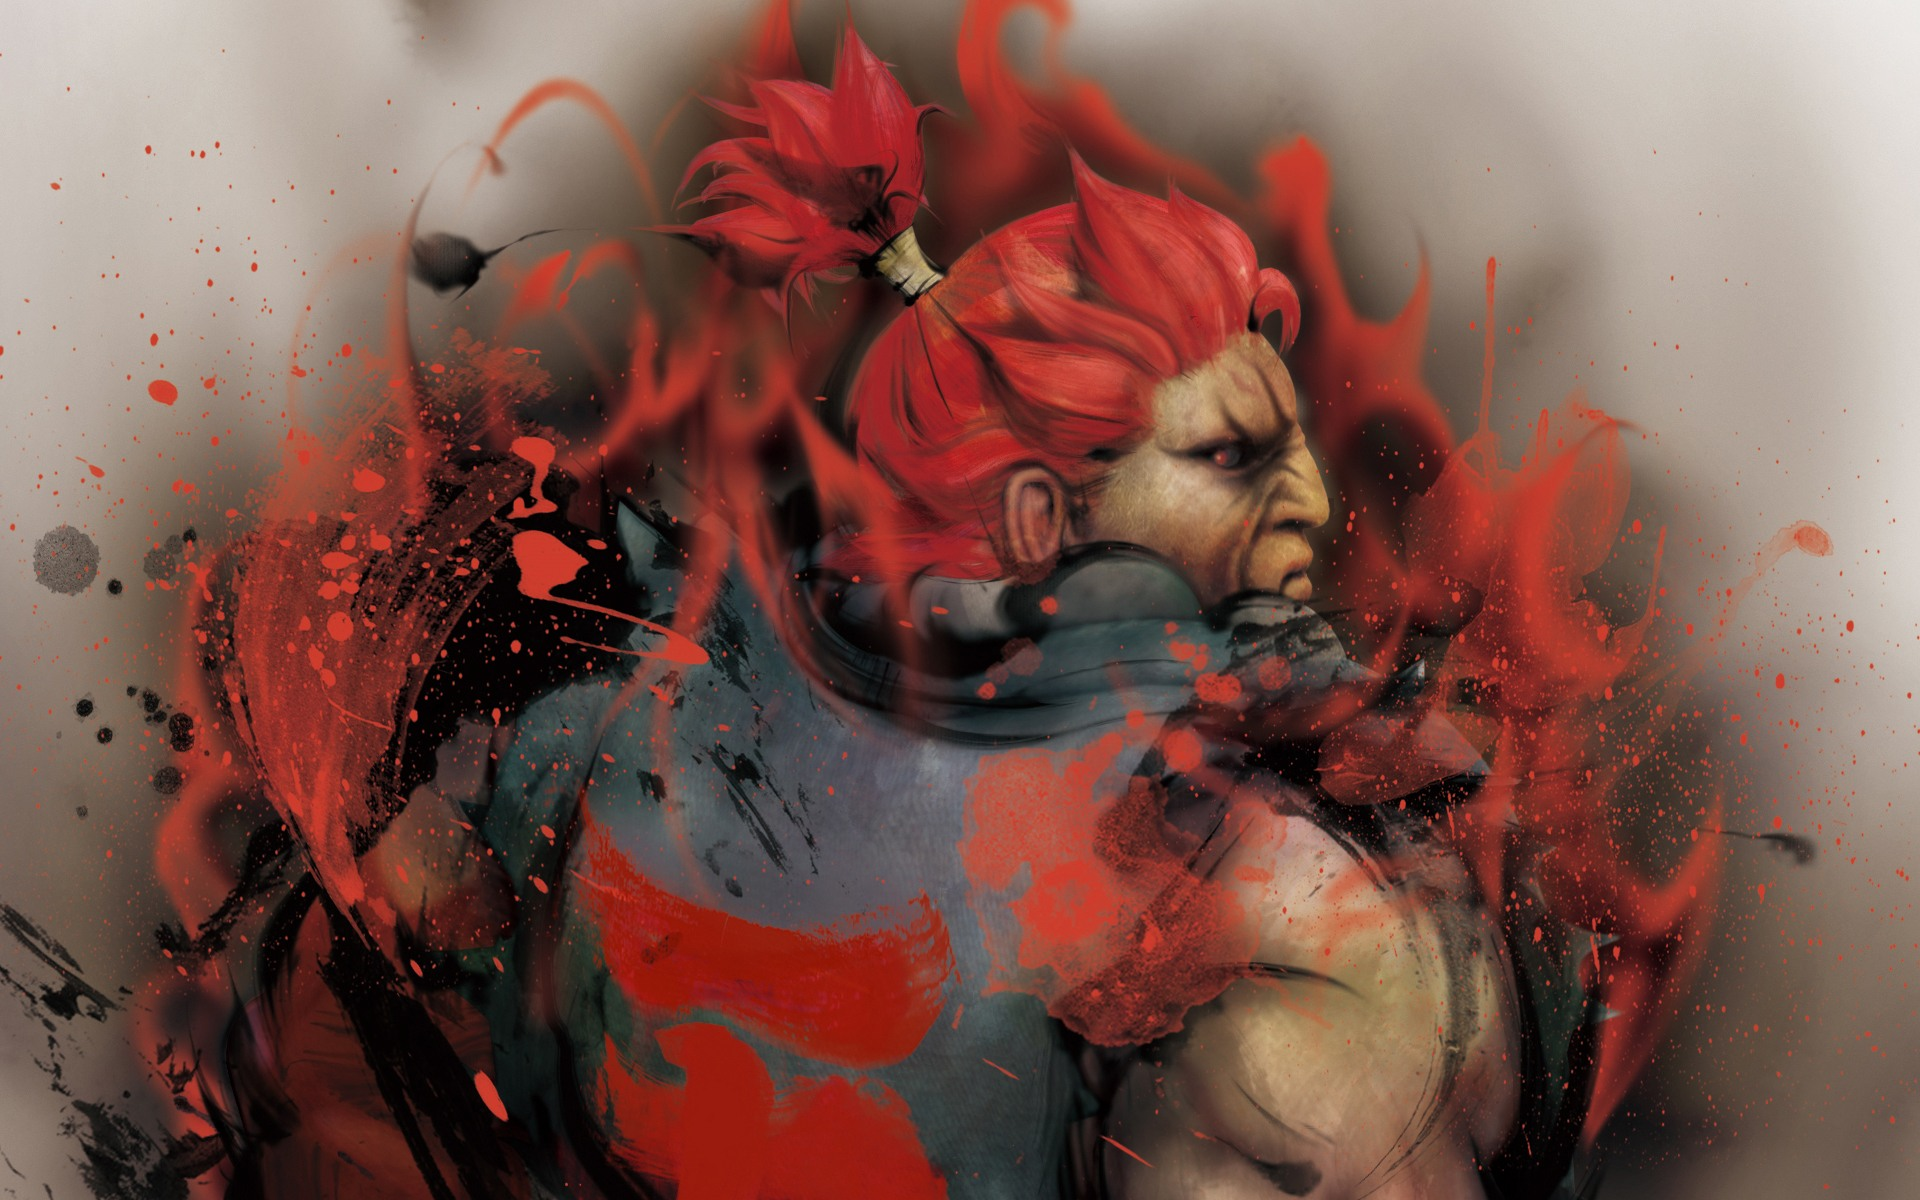 ... : #896279 New Street Fighter Photos View #896279 Wallpapers | RiseWLP